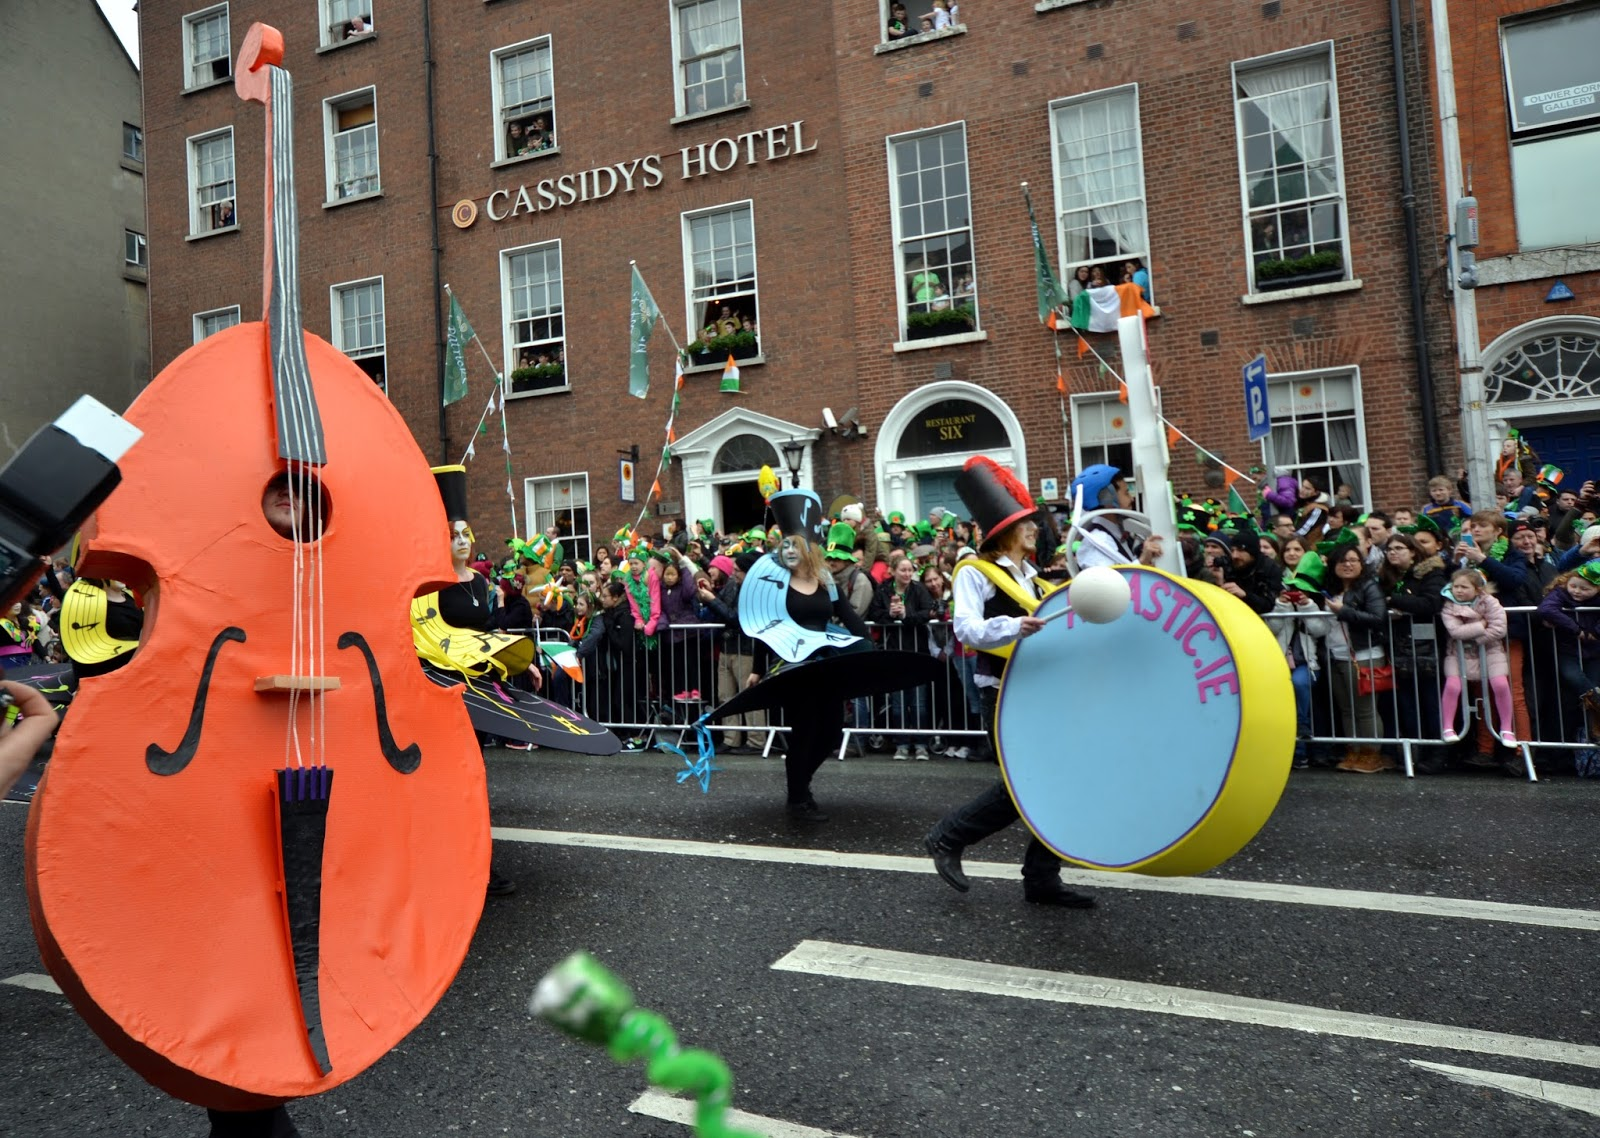 Dublin, Ireland, Eire, St Patrick's day, parade, Guinness, Irish, crazy, Temple Bar, Dropkick Murphys, Al Barr, Ken Casey, Kiss me im shitfaced, On stage, mental, travel